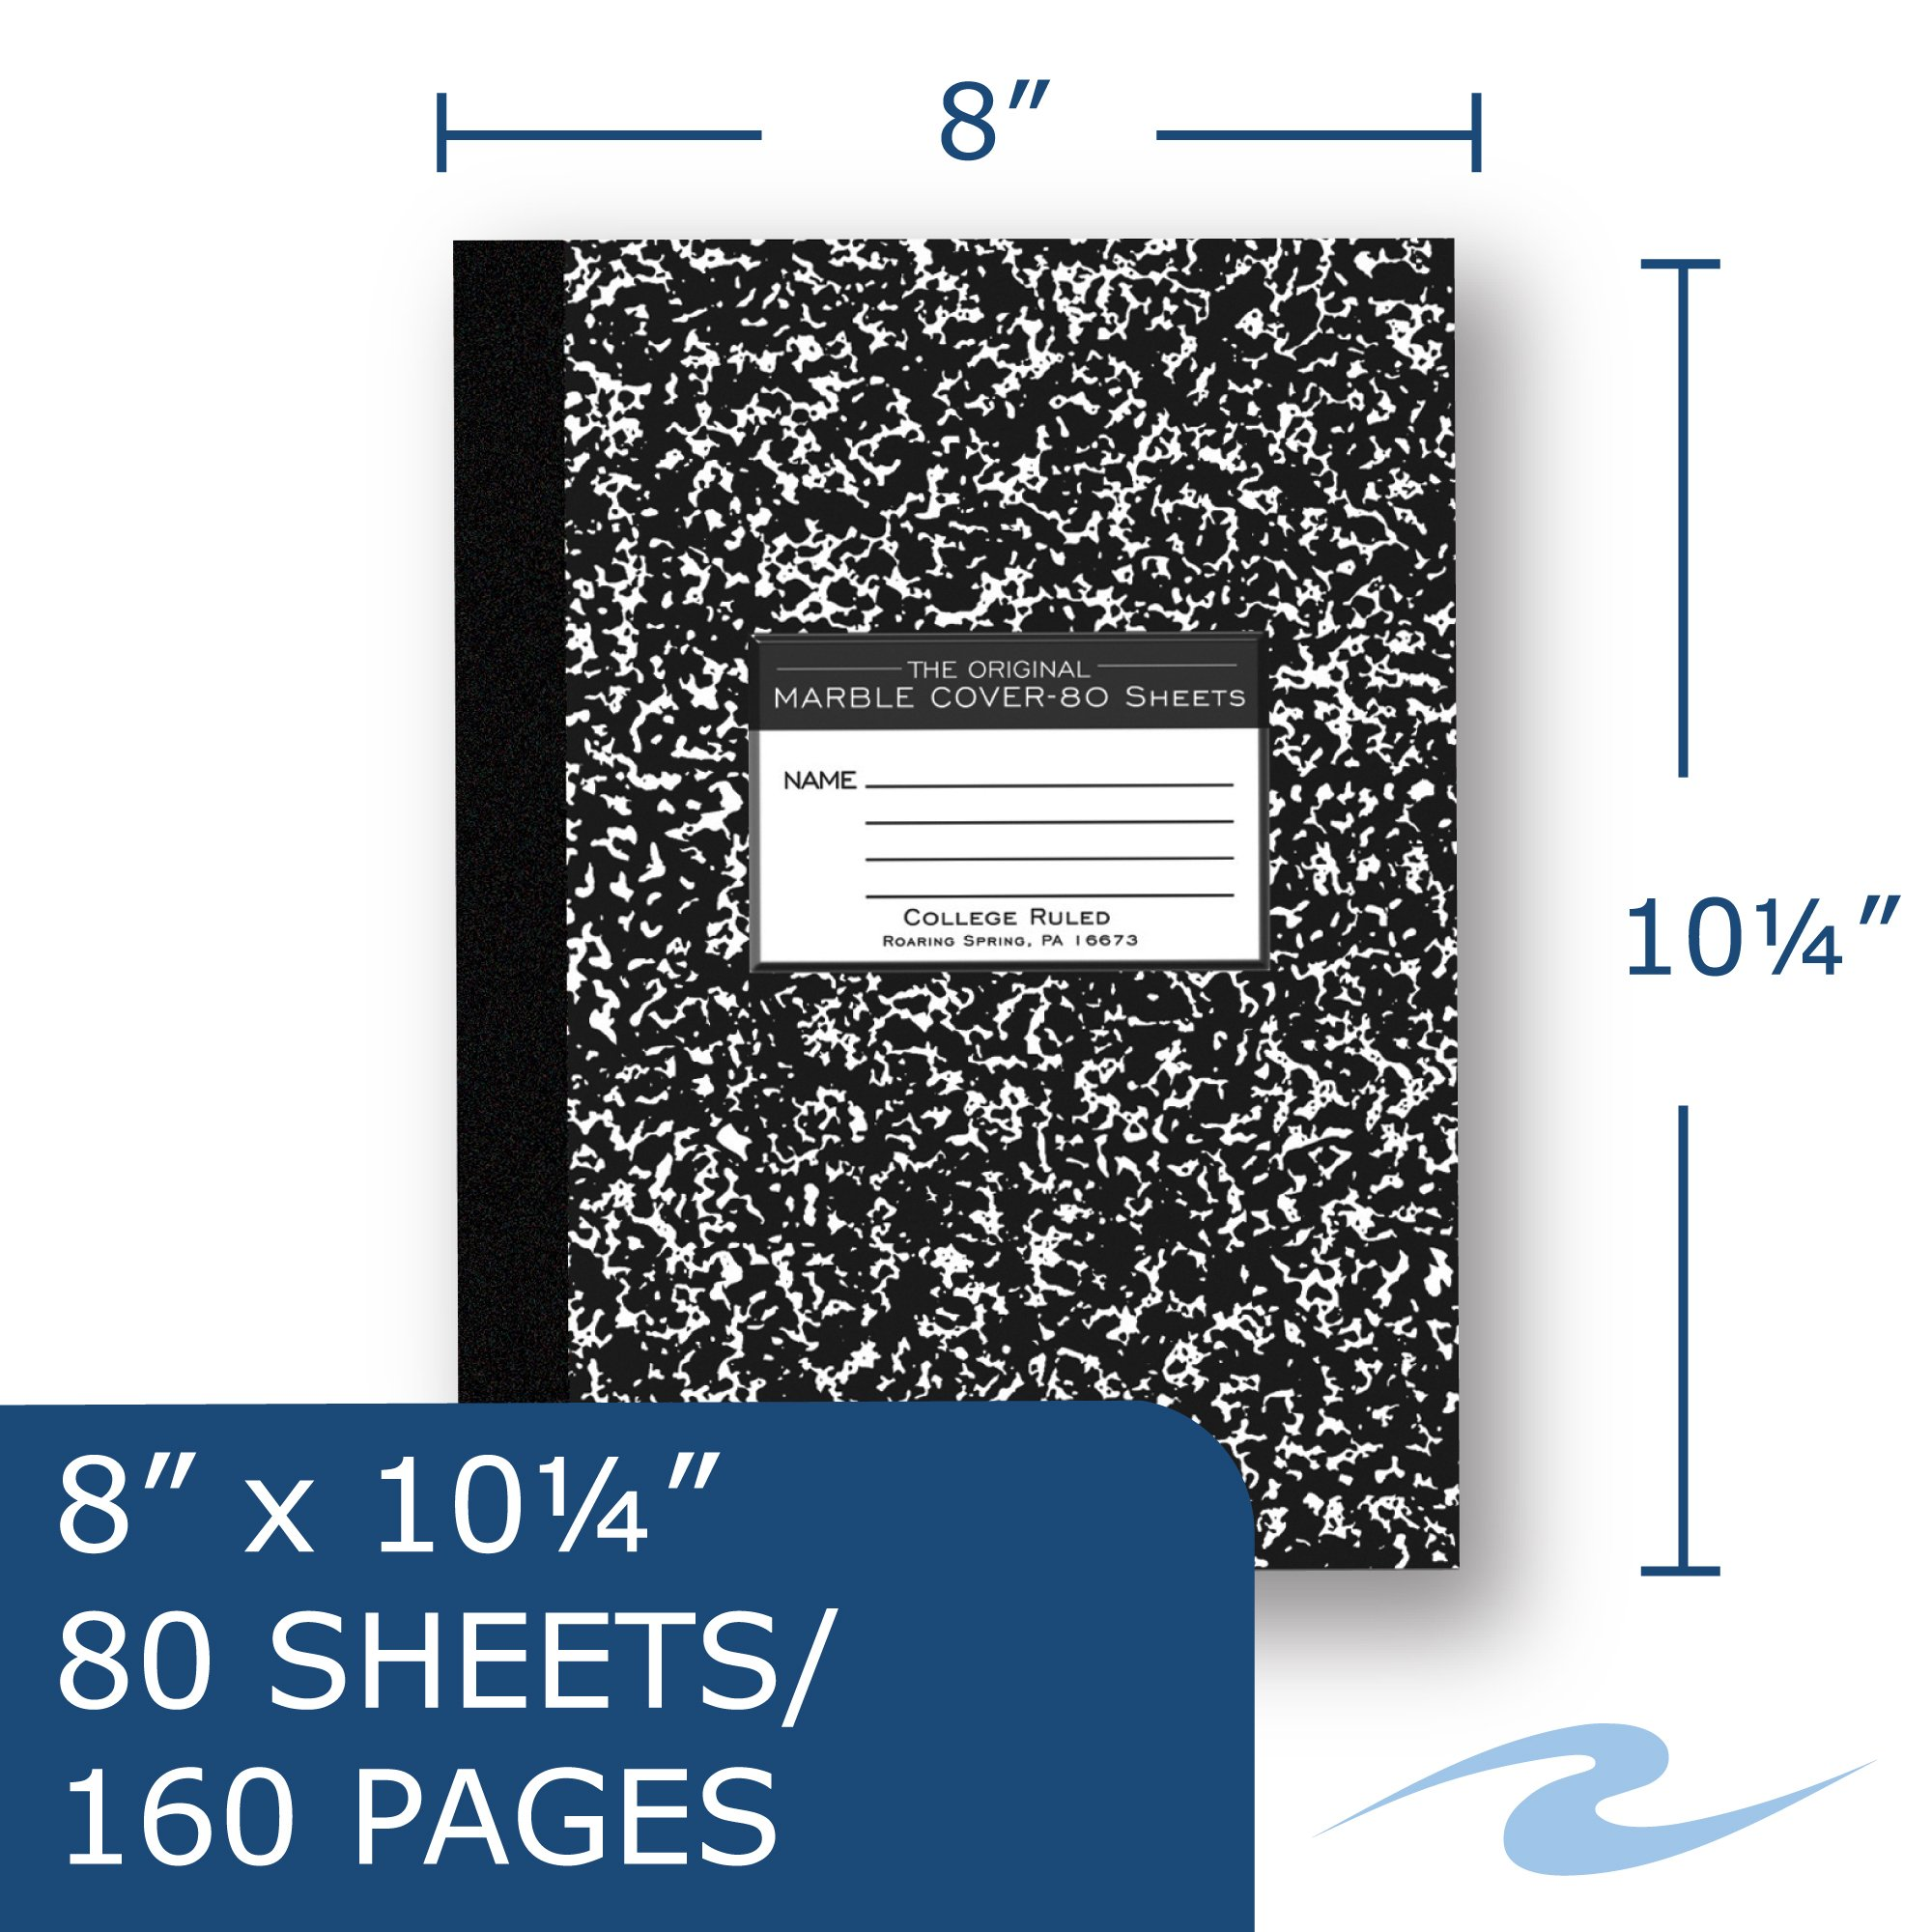 Roaring Spring Premium Composition Book, 10 1/4'' x 7 7/8'', College Ruled, 80 sheets by Roaring Spring (Image #2)